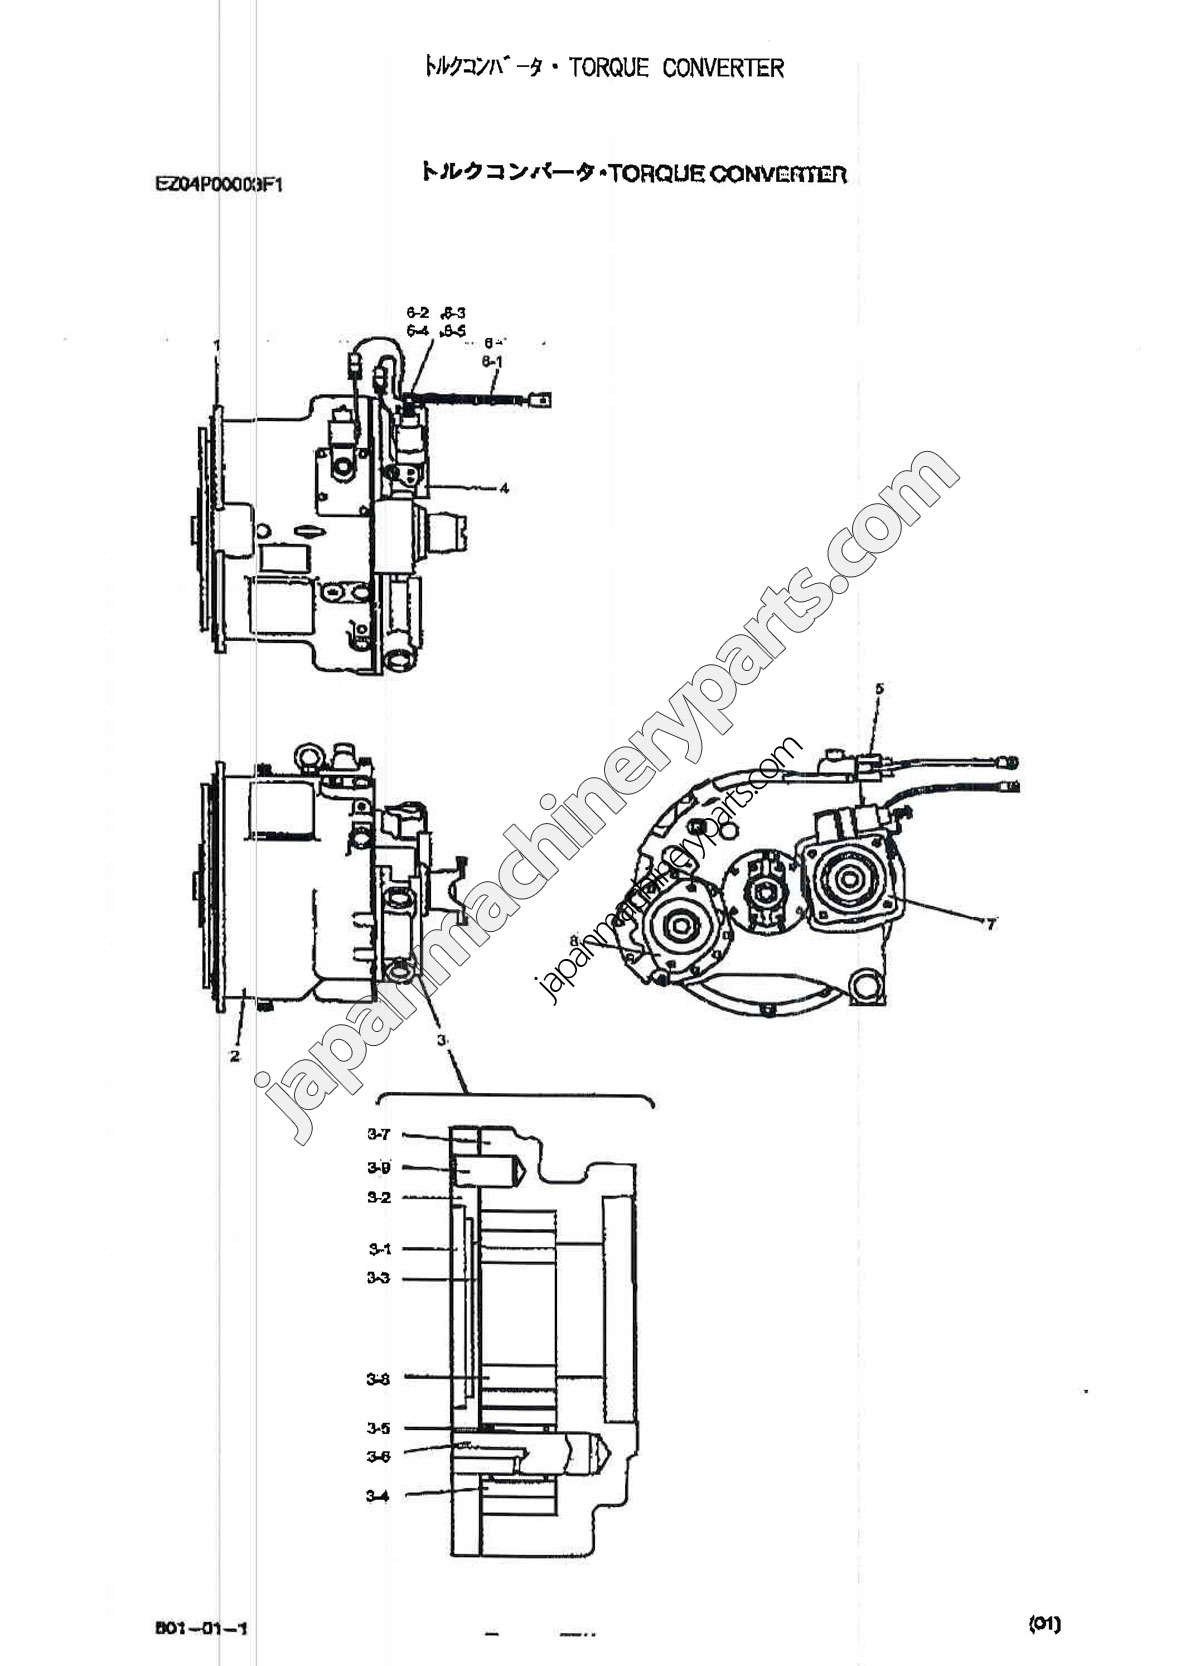 Torque Converter Diagram Parts for Kobelco Rk250 5